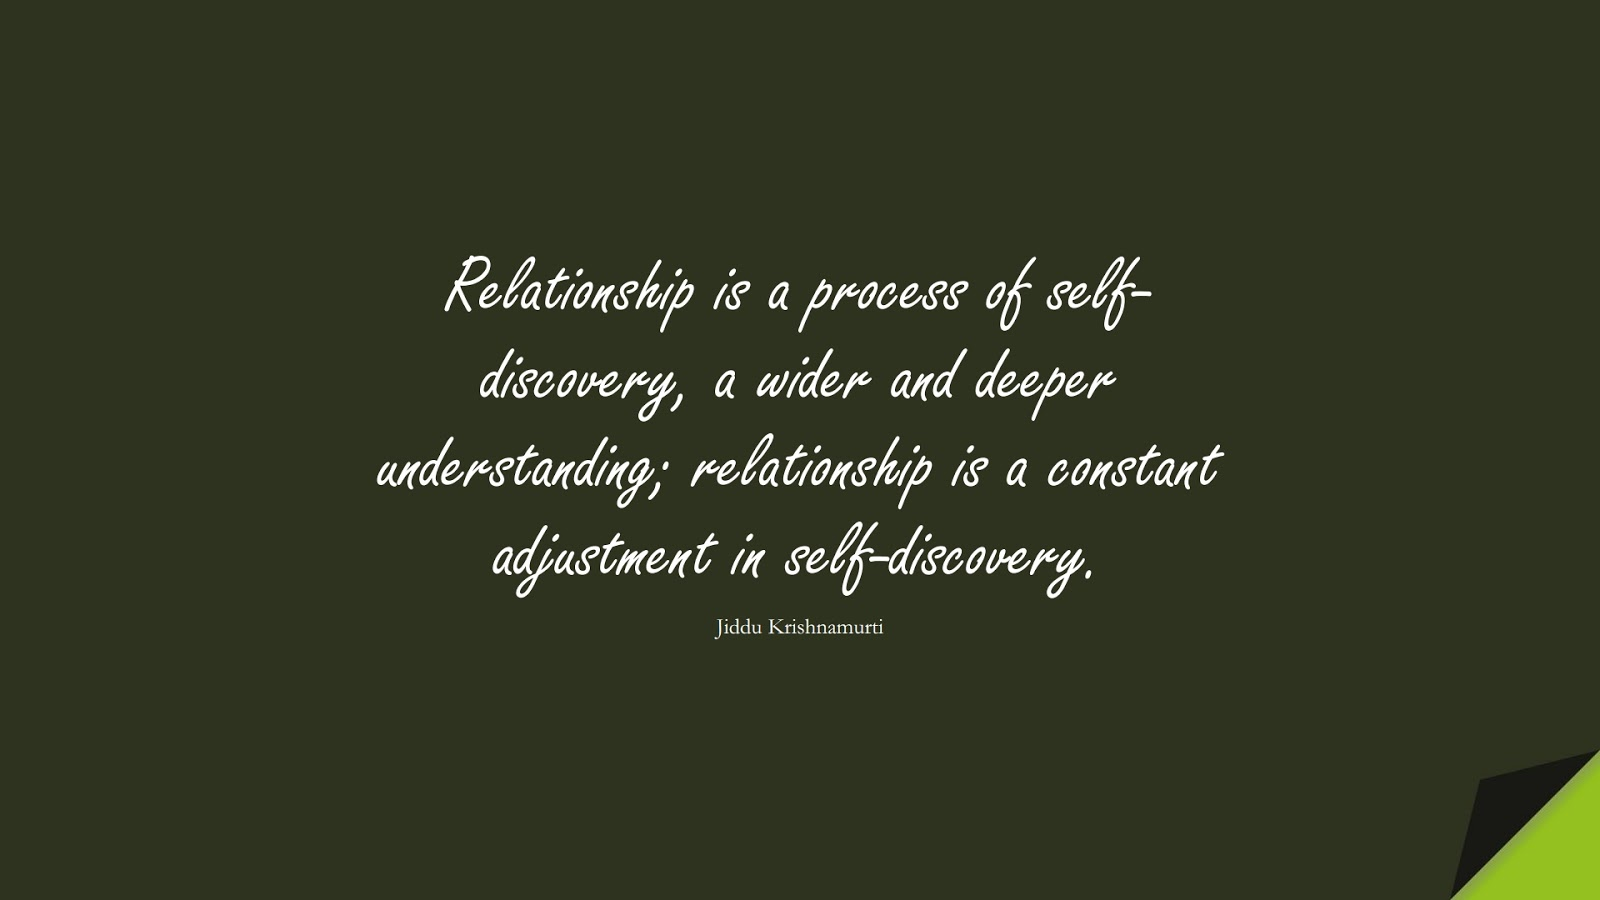 Relationship is a process of self-discovery, a wider and deeper understanding; relationship is a constant adjustment in self-discovery. (Jiddu Krishnamurti);  #RelationshipQuotes